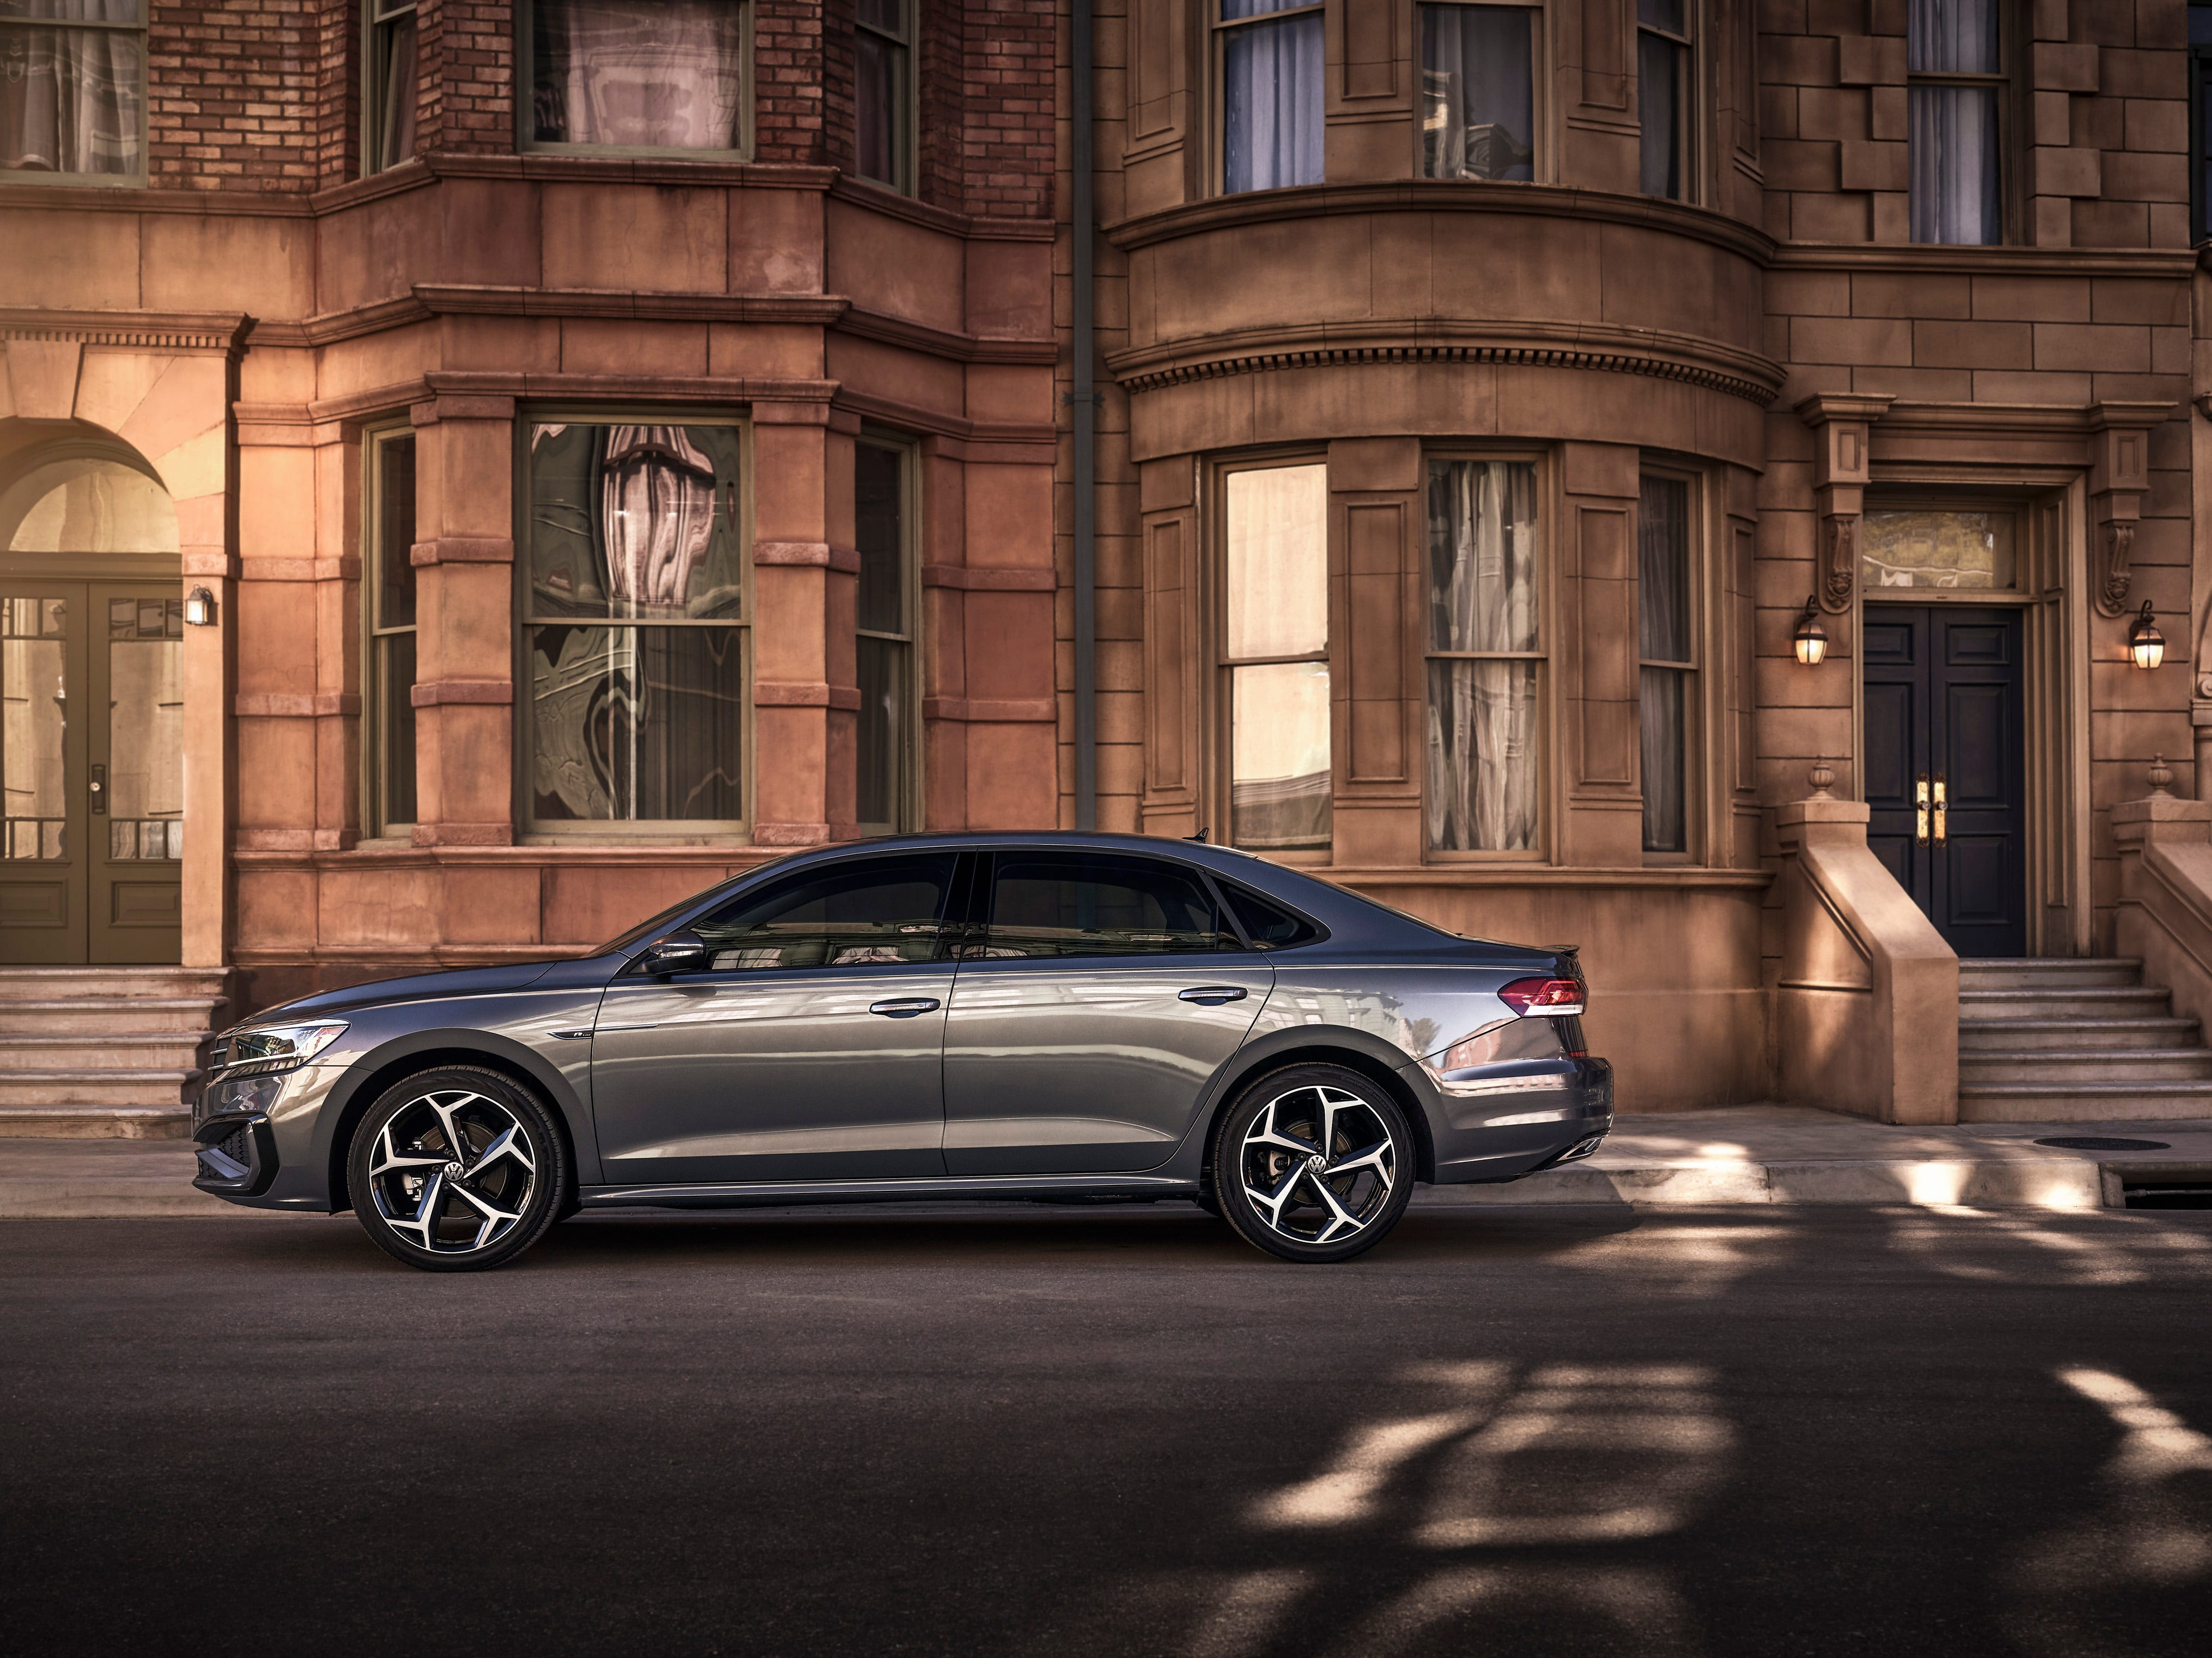 """""""Passat is the only midsize sedan to offer German driving dynamics at an affordable price and has long resonated with buyers for its combination of comfort, reliability and driving dynamics,"""" said Scott Keogh, CEO of the North American Region, Volkswagen."""